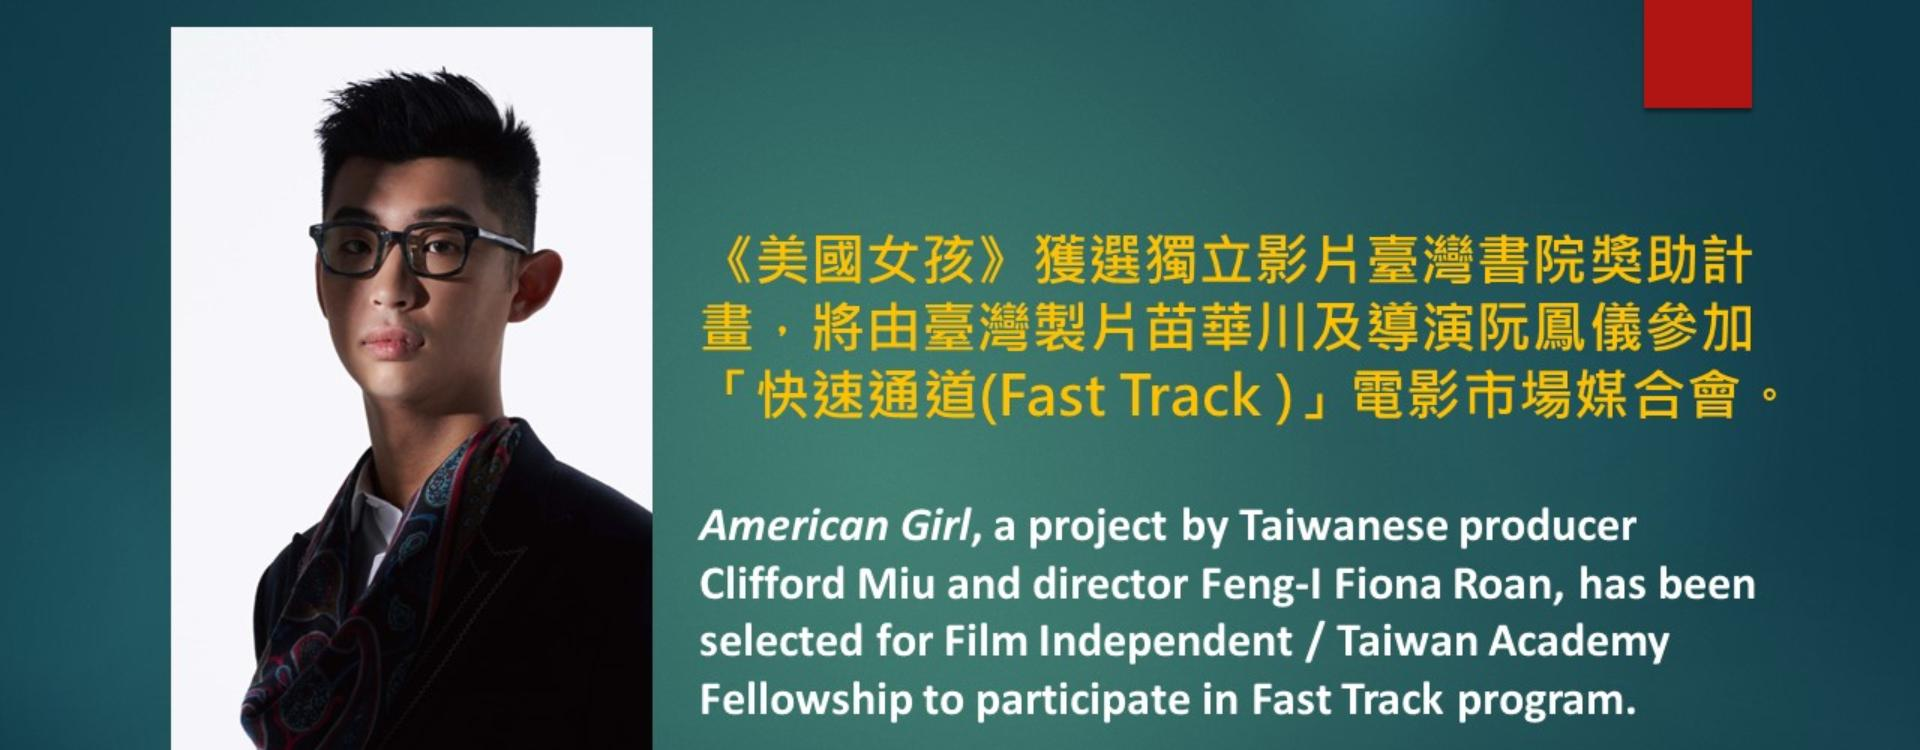 """Taiwanese Project American Girl Selected for Film Independent / Taiwan Academy Fellowship to """"Fast Track"""" American Film Industry「另開新視窗」"""